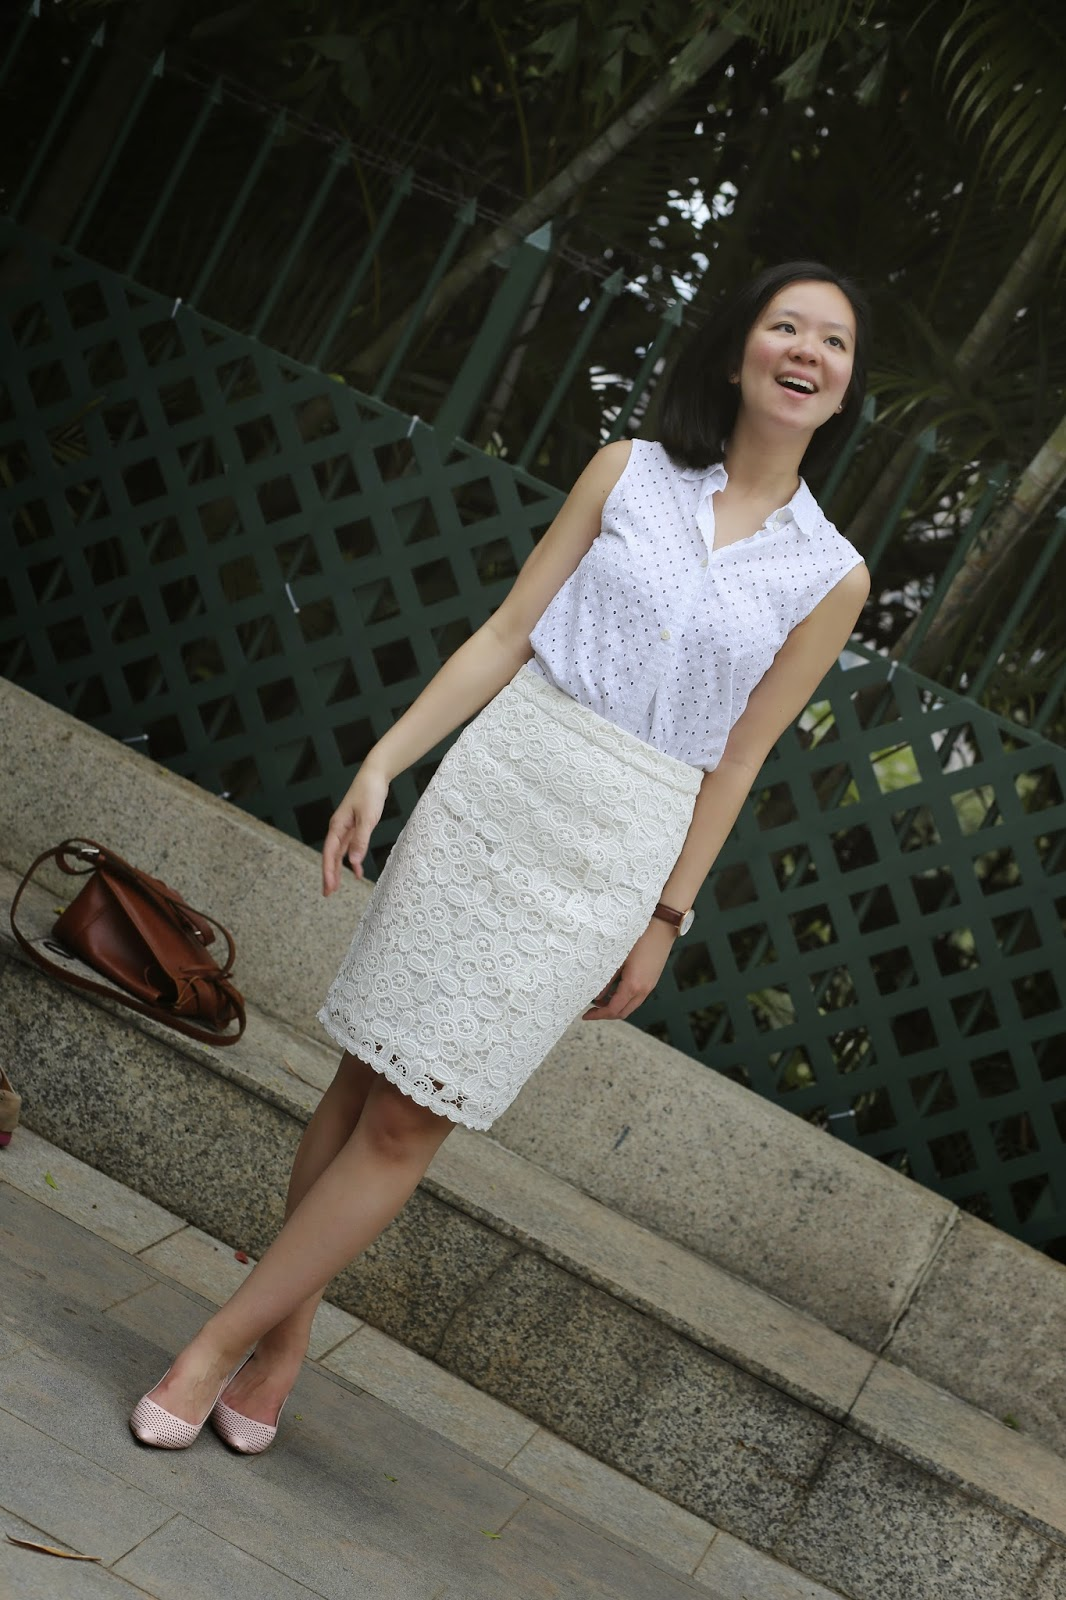 corporate fashion blog, what to wear to work, business casual, finance fashion blog, that working life, white lace pencil skirt, white eyelet top, hong kong fashion blogger